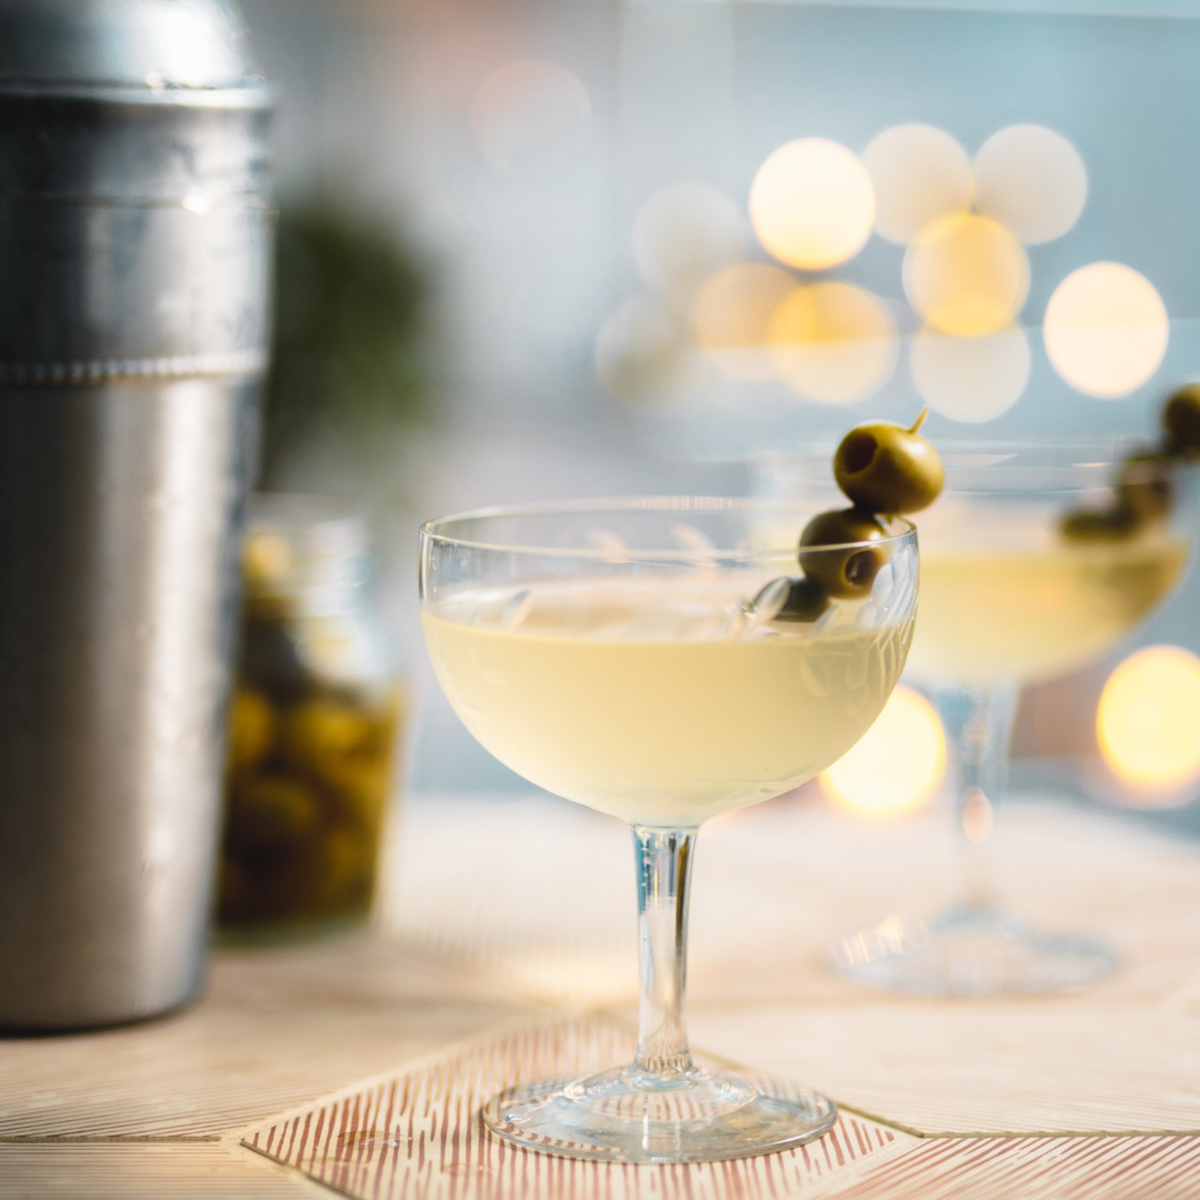 A martini made without the shaker just doesn't taste the same.